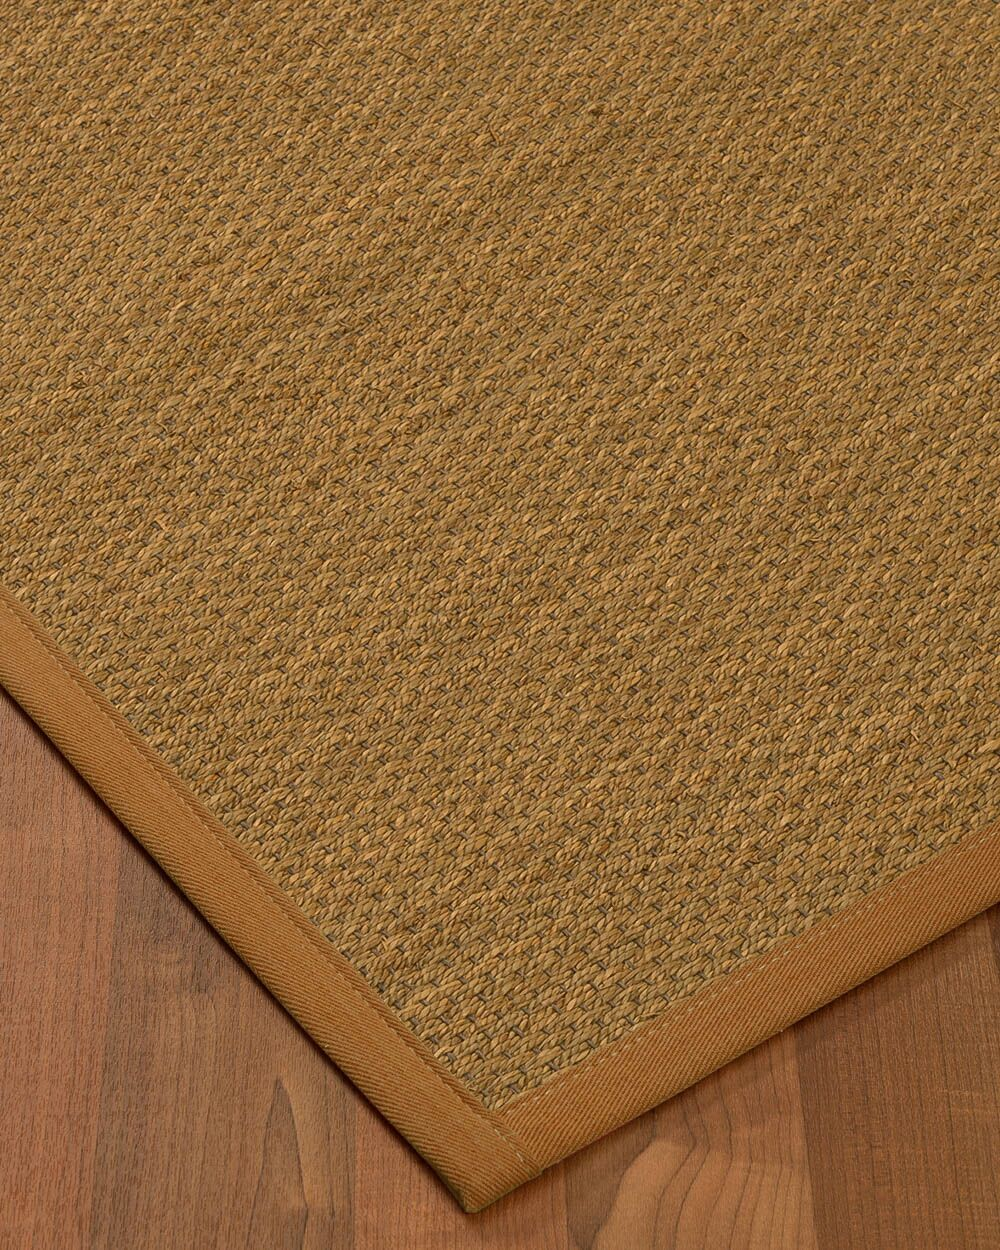 Kenny Border Hand-Woven Brown Area Rug Rug Pad Included: No, Rug Size: Rectangle 3' x 5'